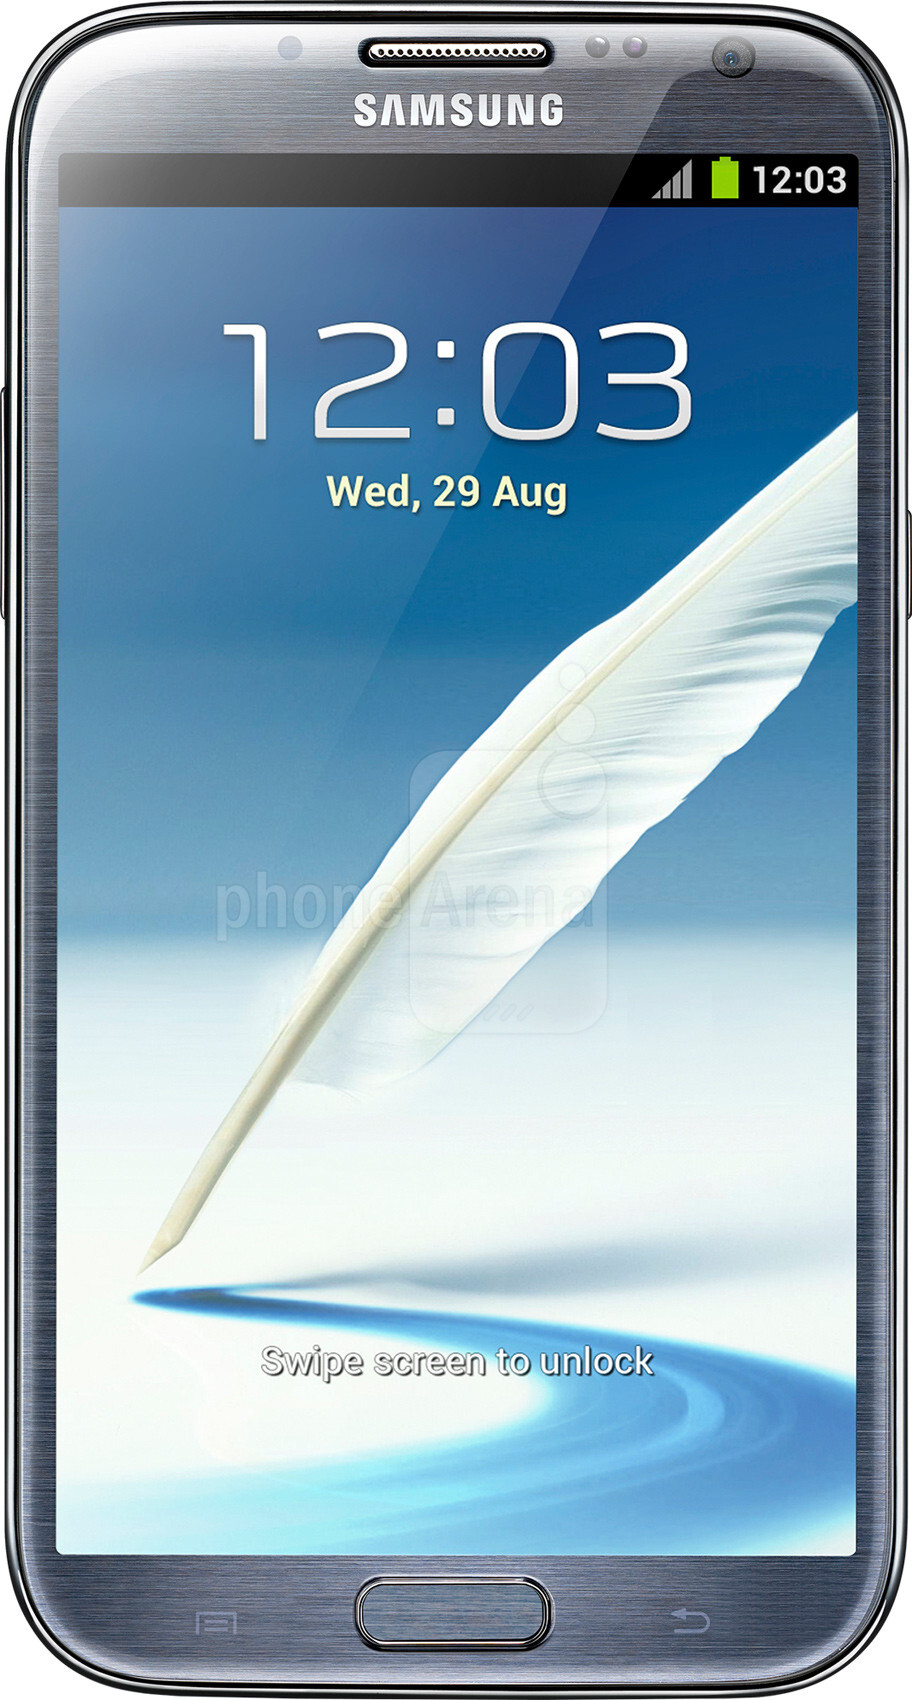 Samsung GALAXY Note II Sprint